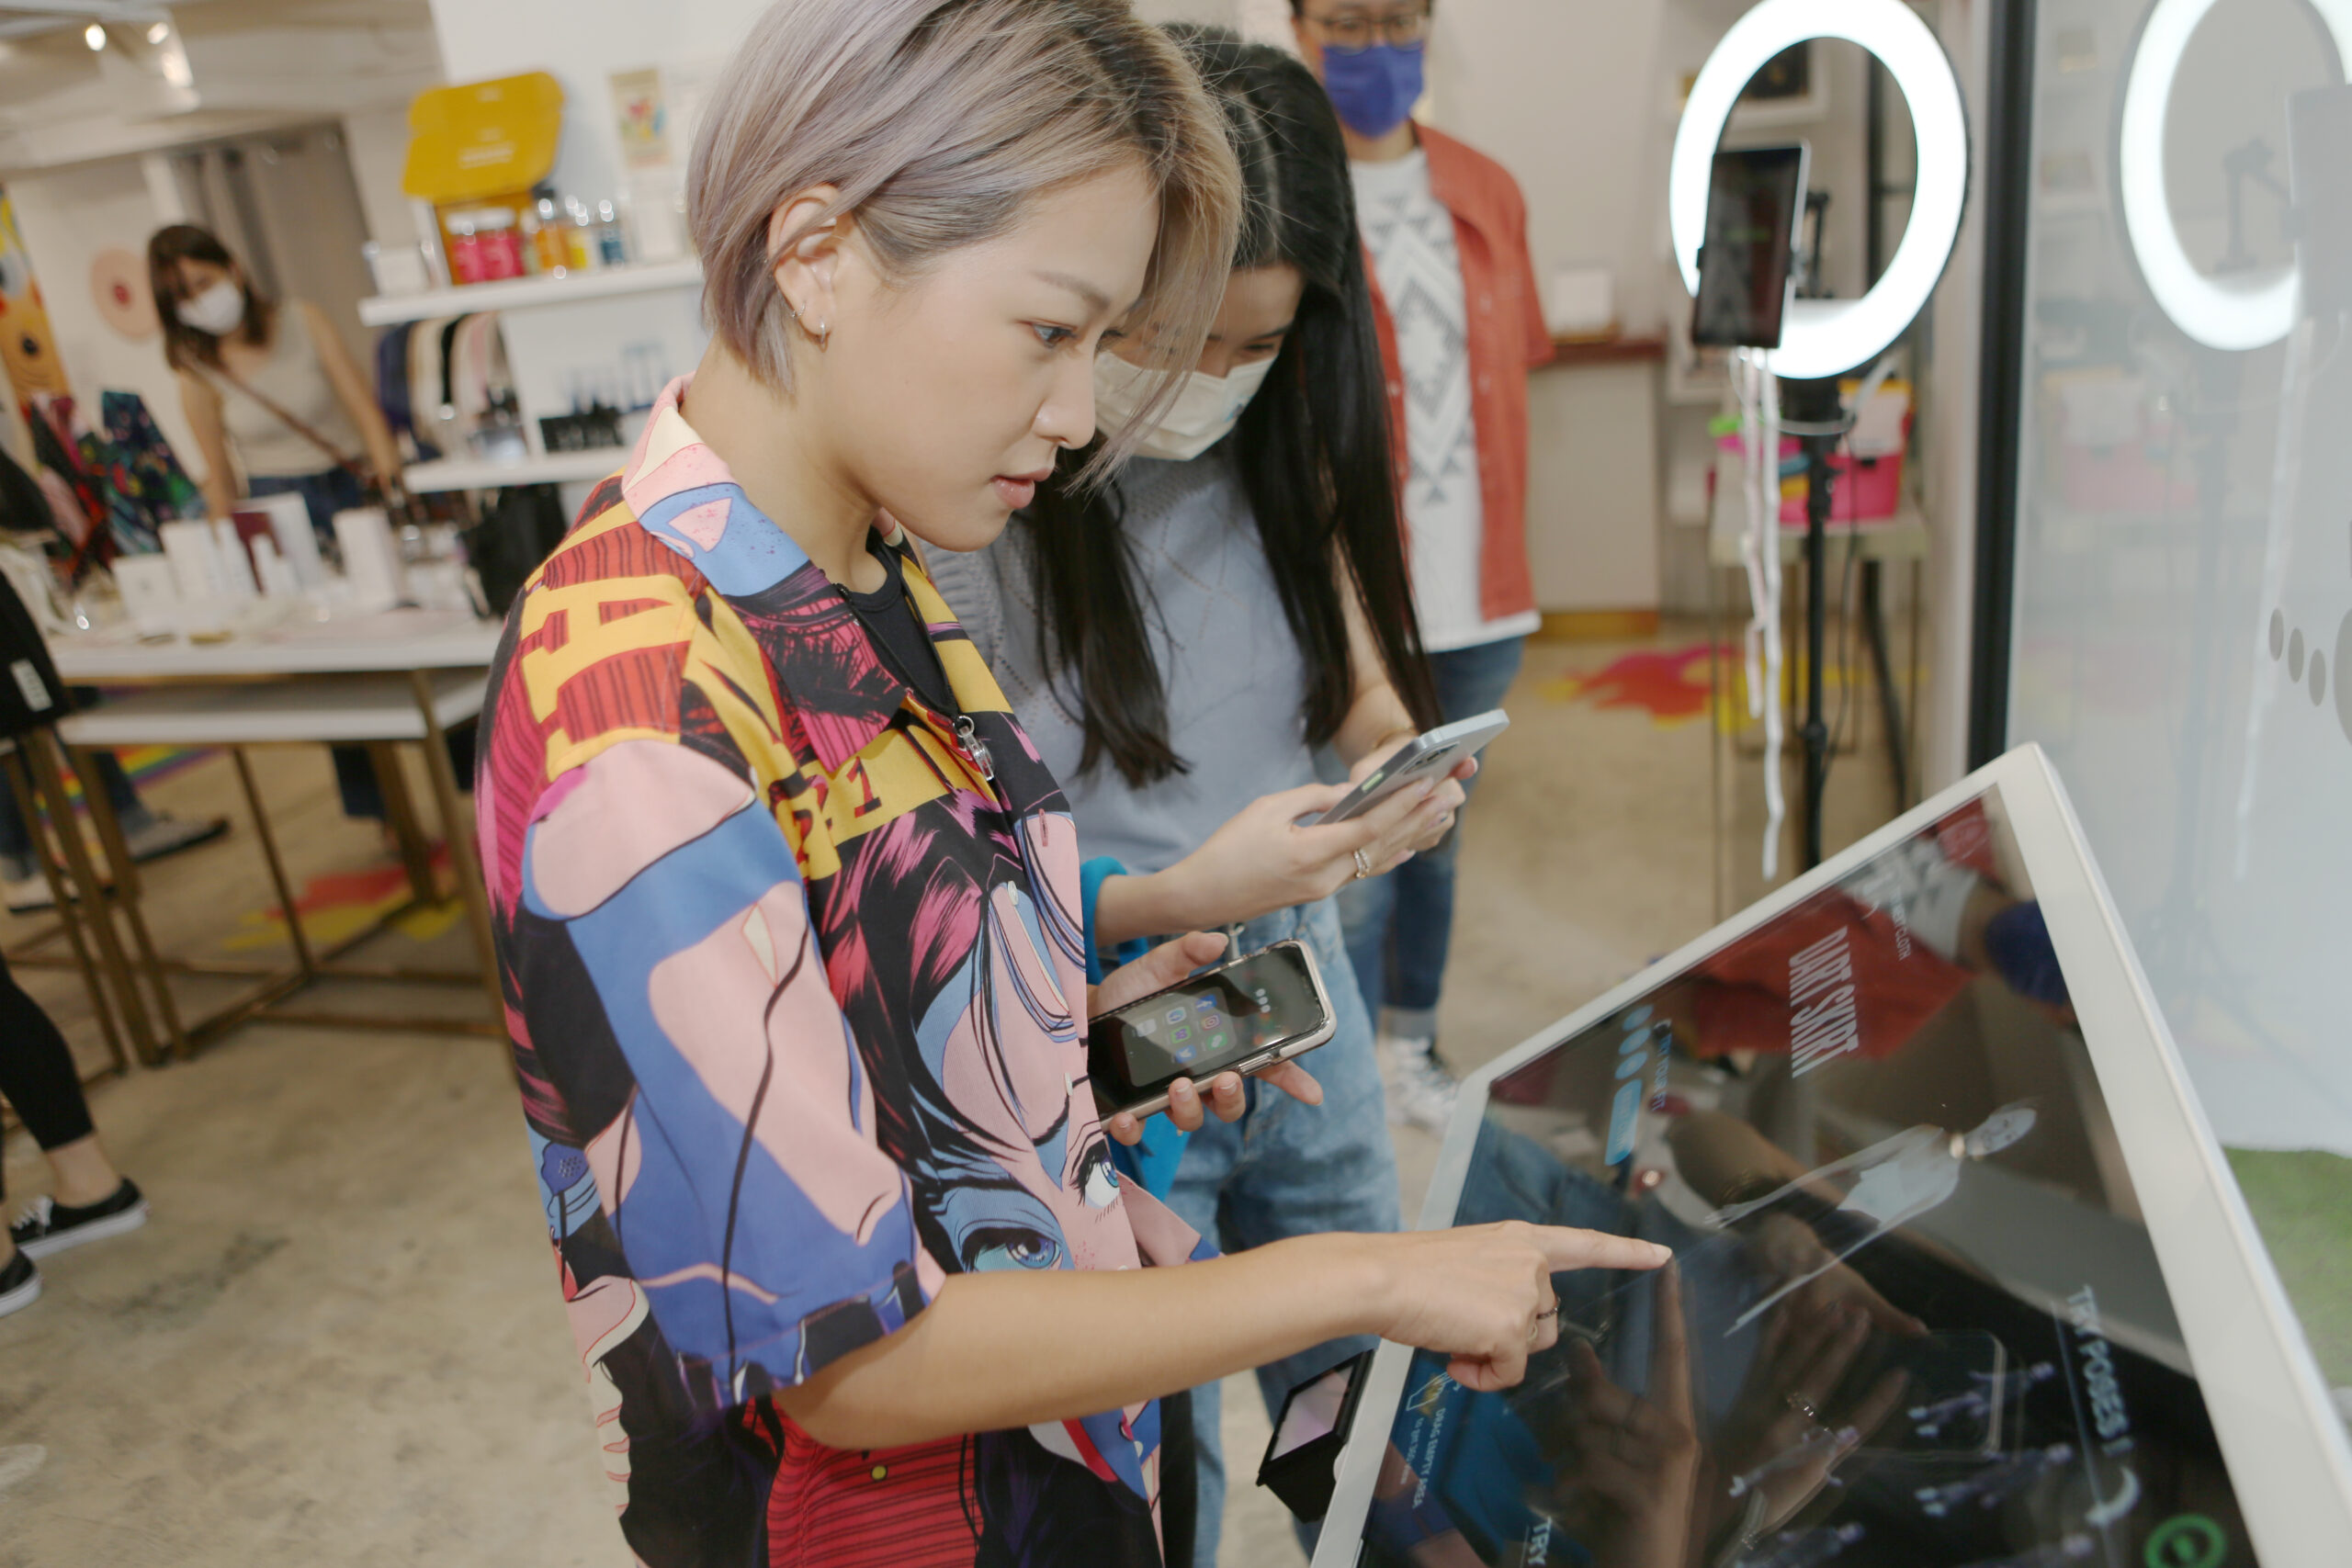 One-stop shopping experience in sustainable fashion, from fitting to manufacturing @WSNXT 6